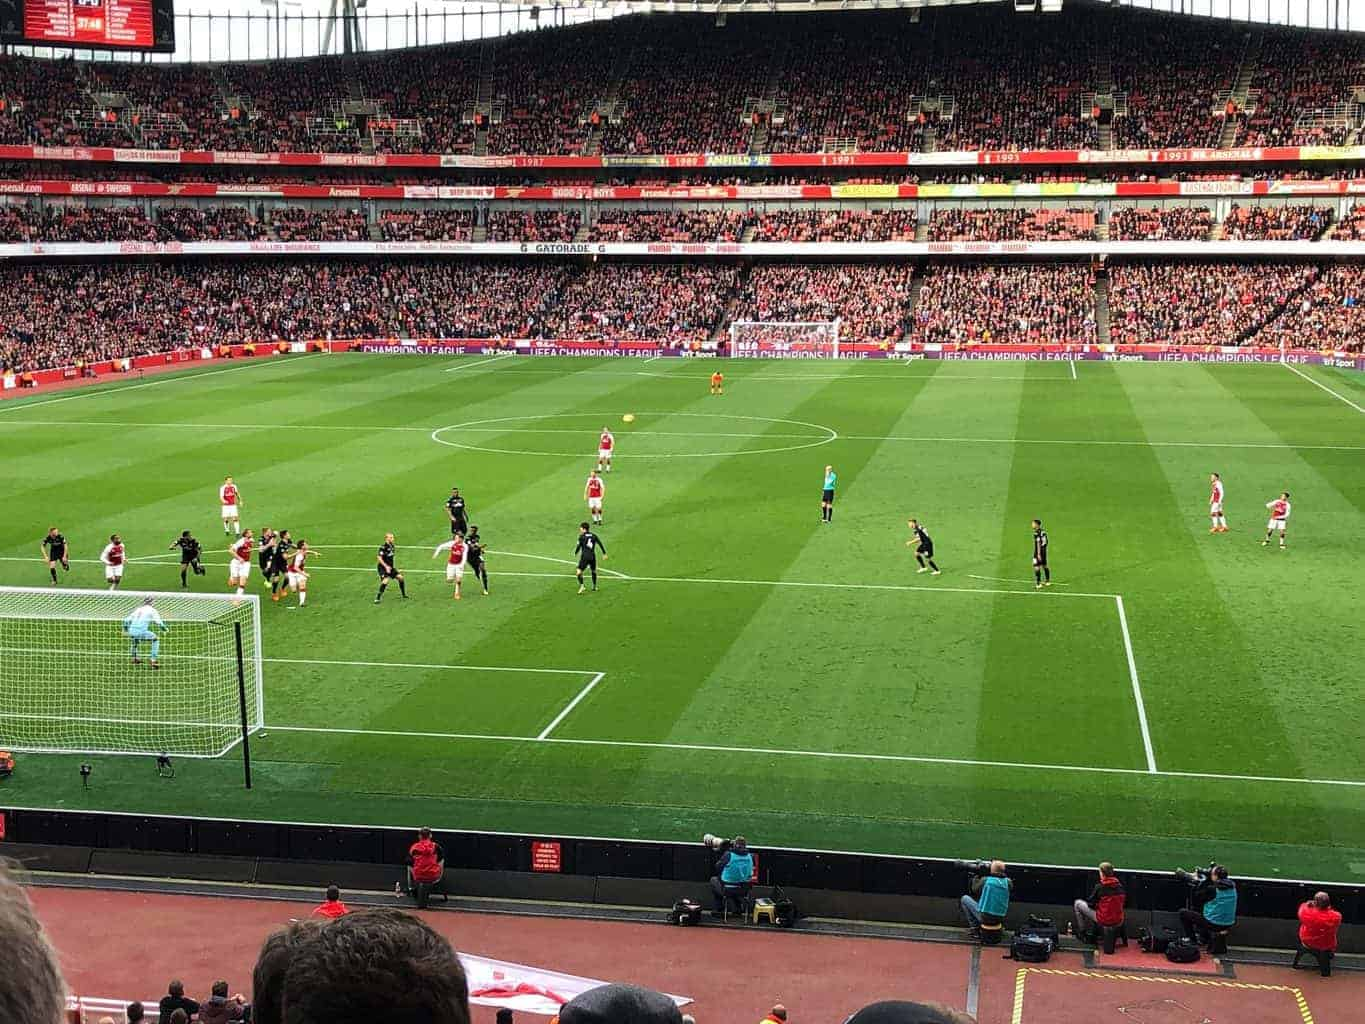 view of players on field from Arsenal hospitality seats at Emirates Stadium